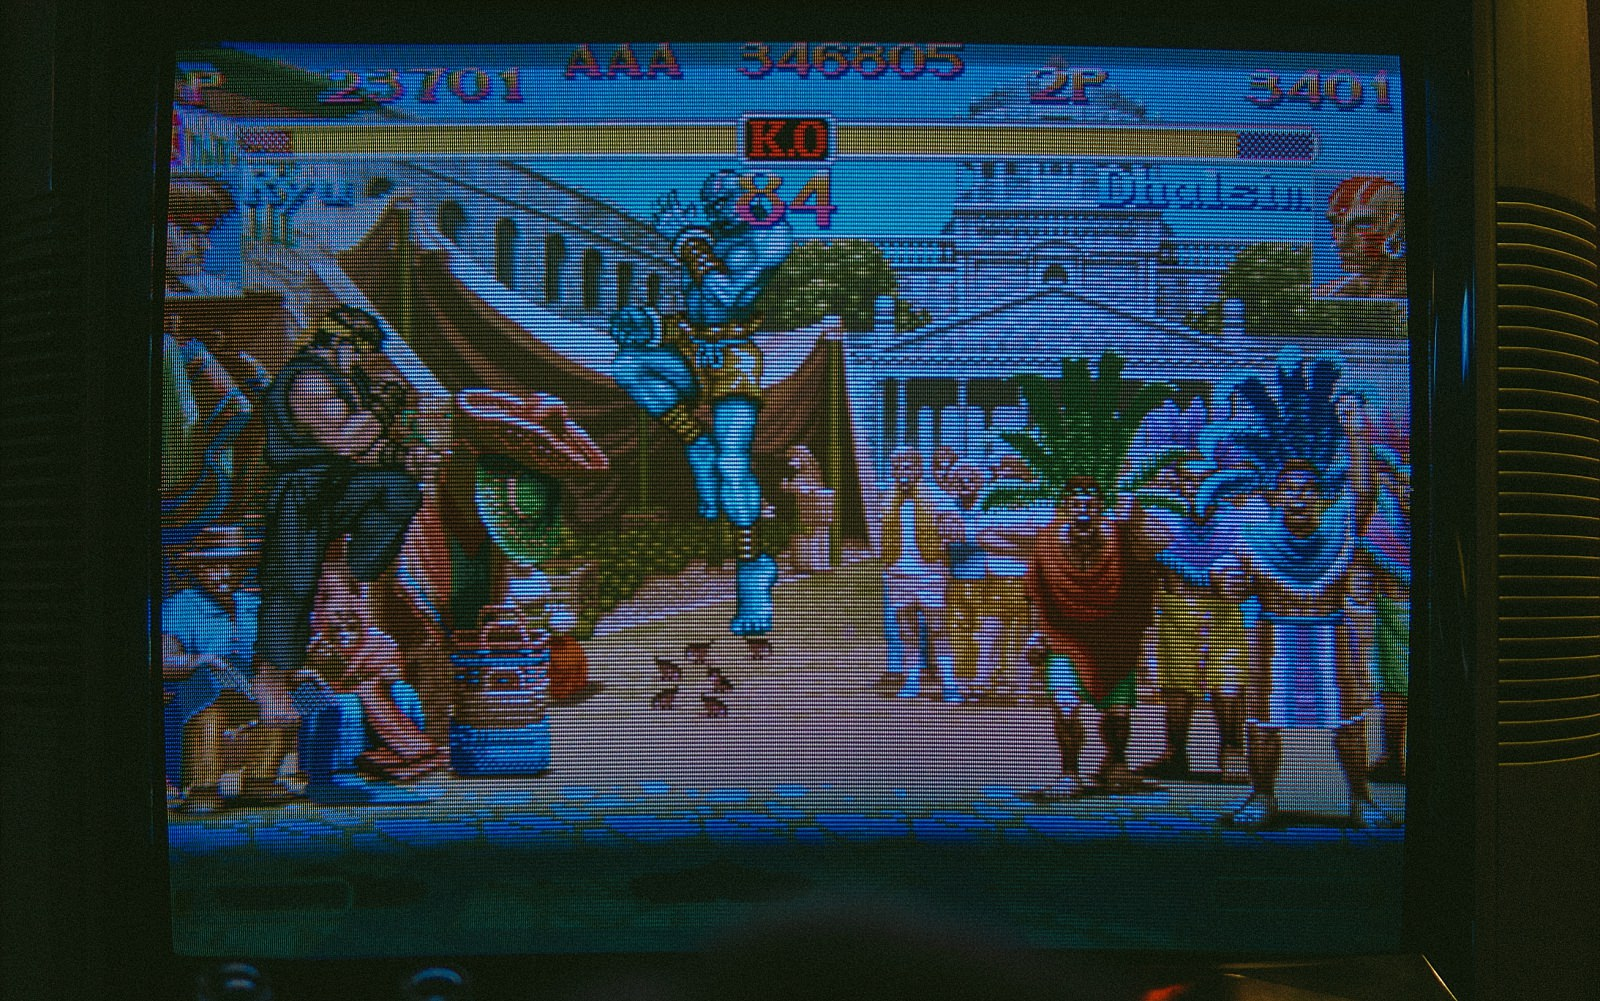 street fighter game on screen